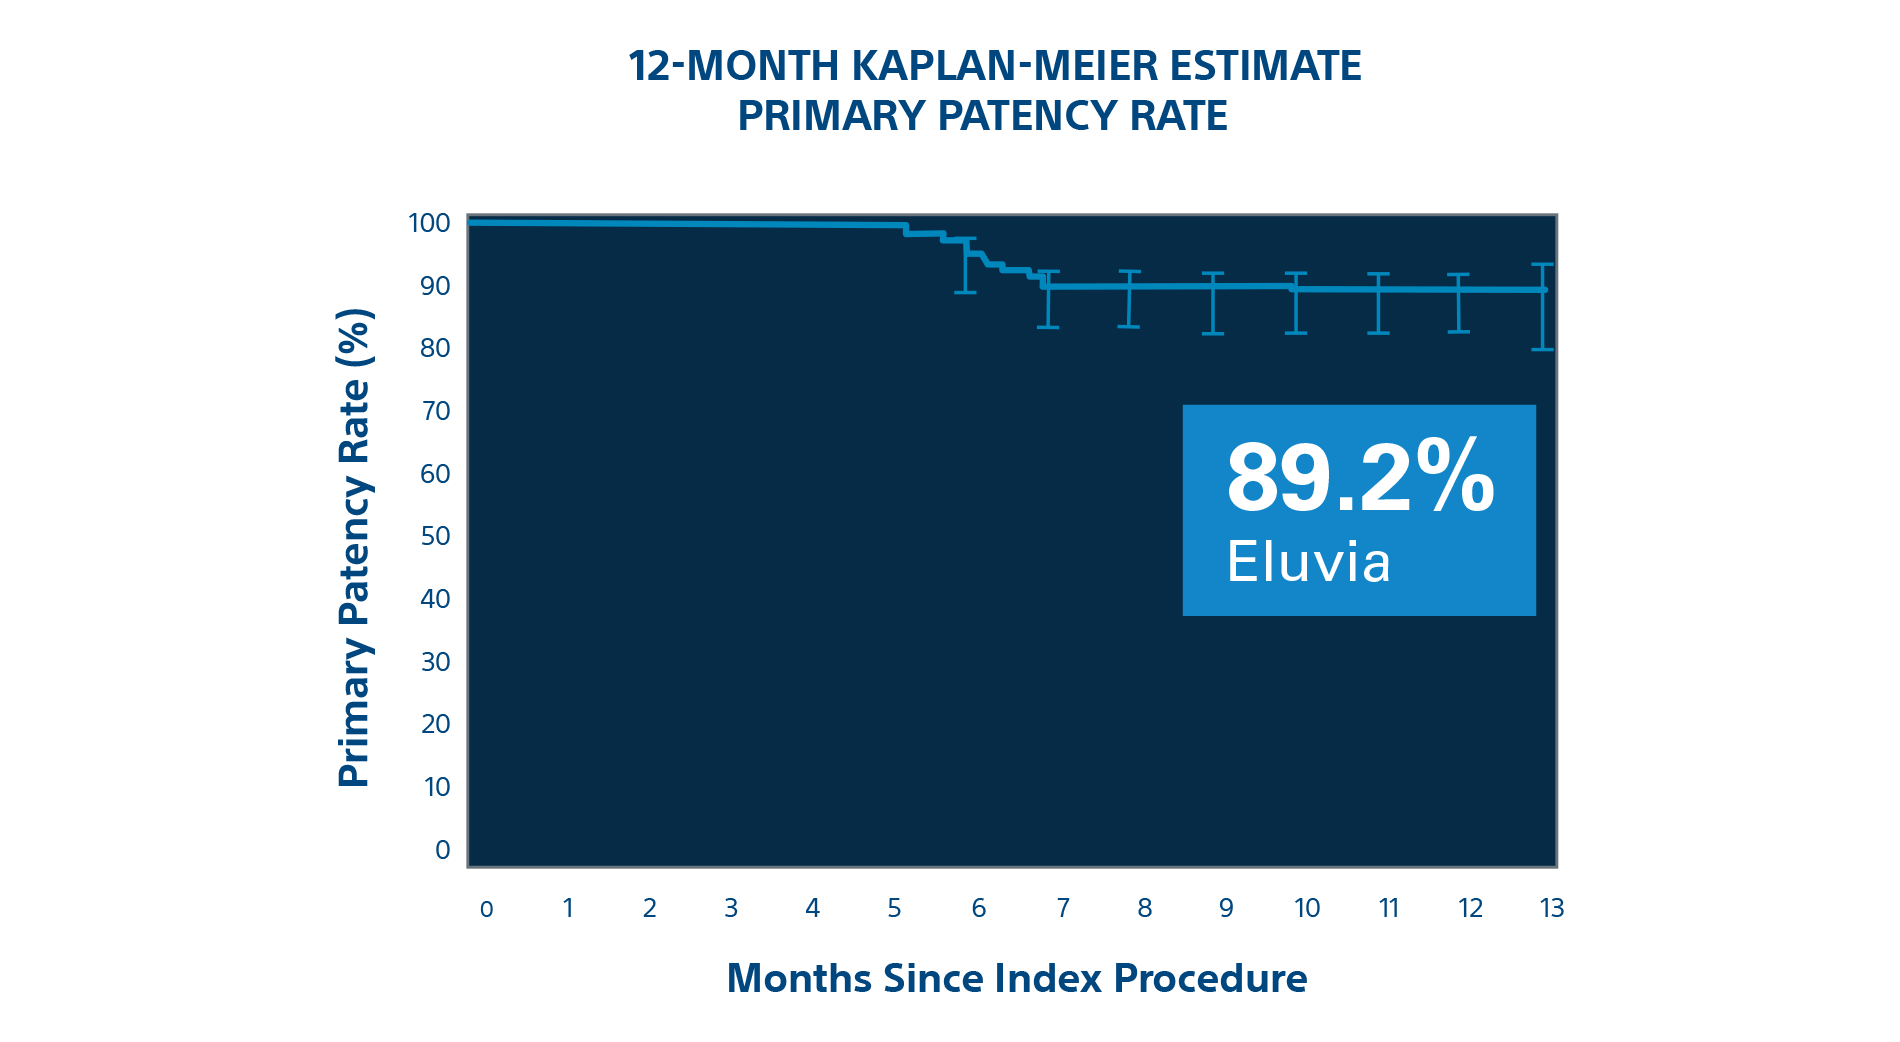 12-month Kaplan-Meier Estimate Primary Patency Rate